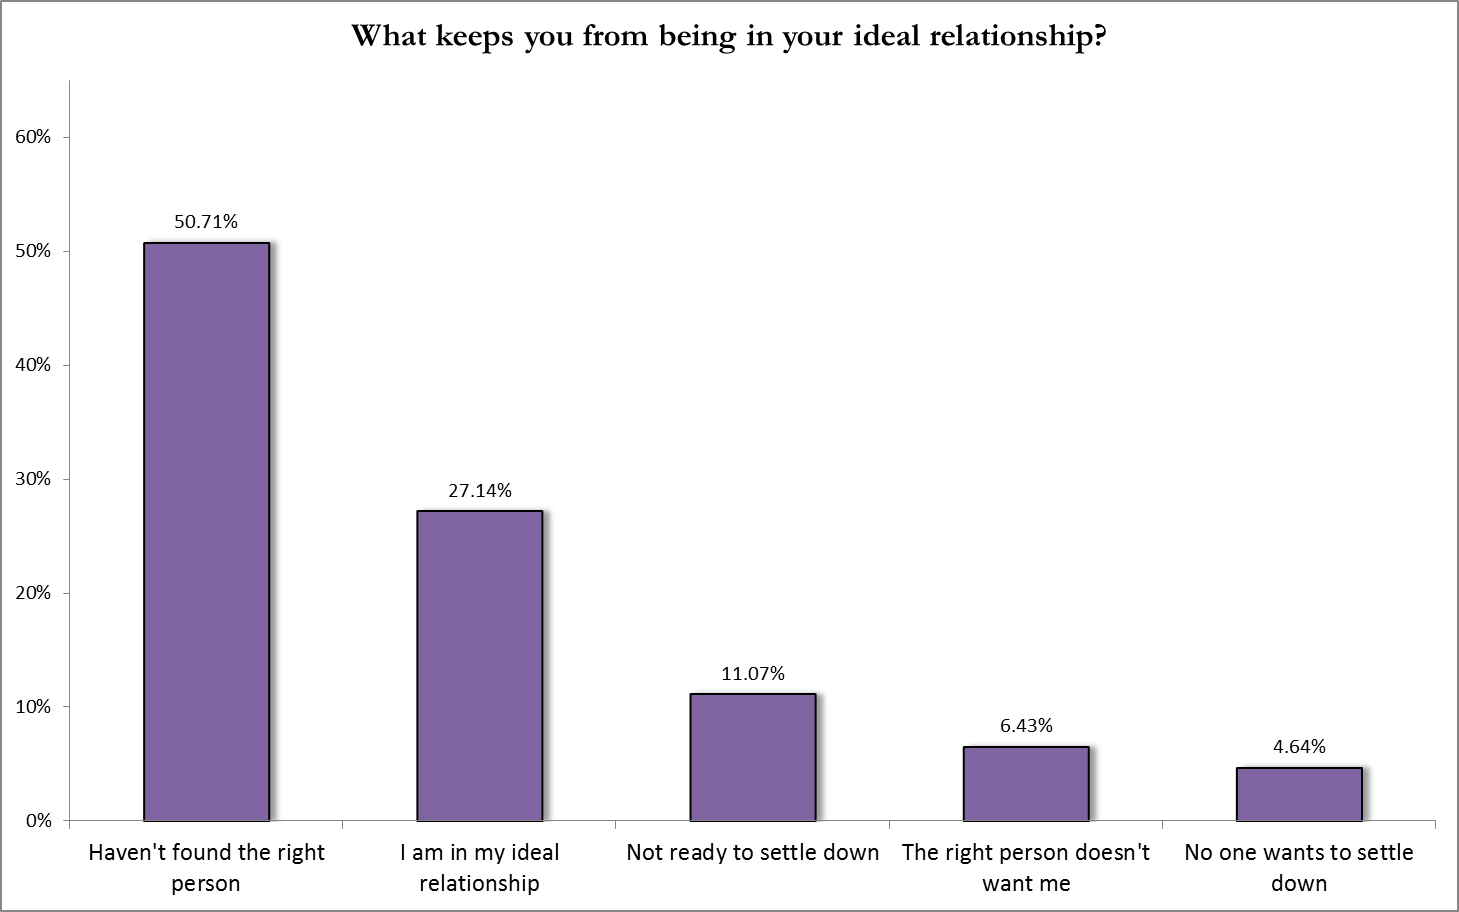 What keeps you from being in your ideal relationship